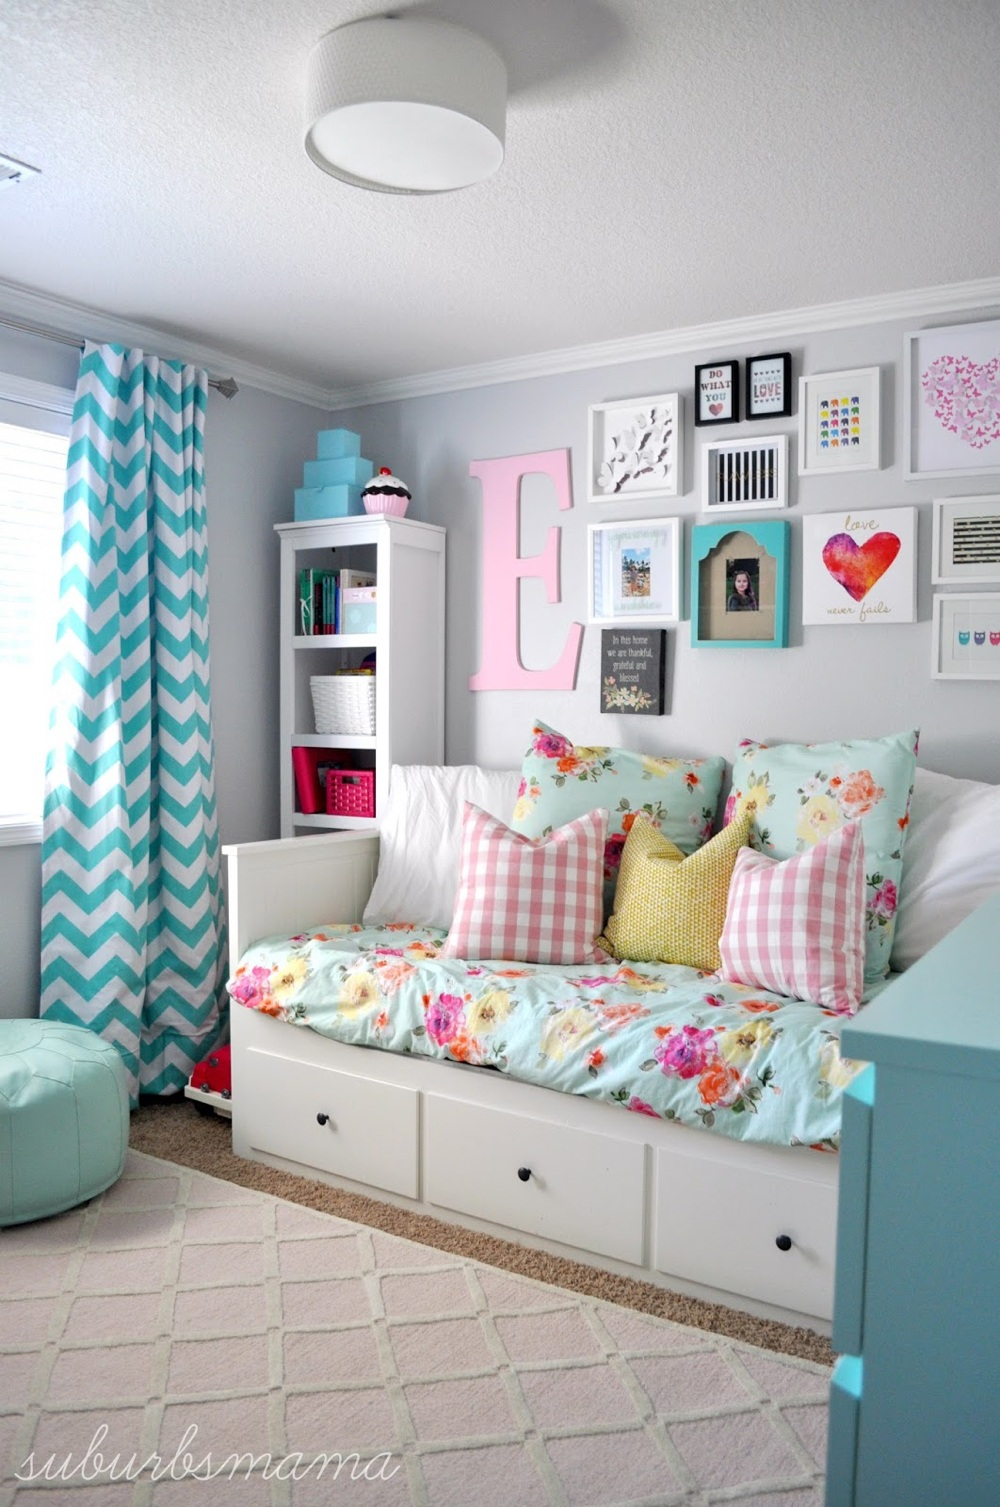 23 Stylish Teen Girl's Bedroom Ideas | Homelovr on Room Girl  id=36621